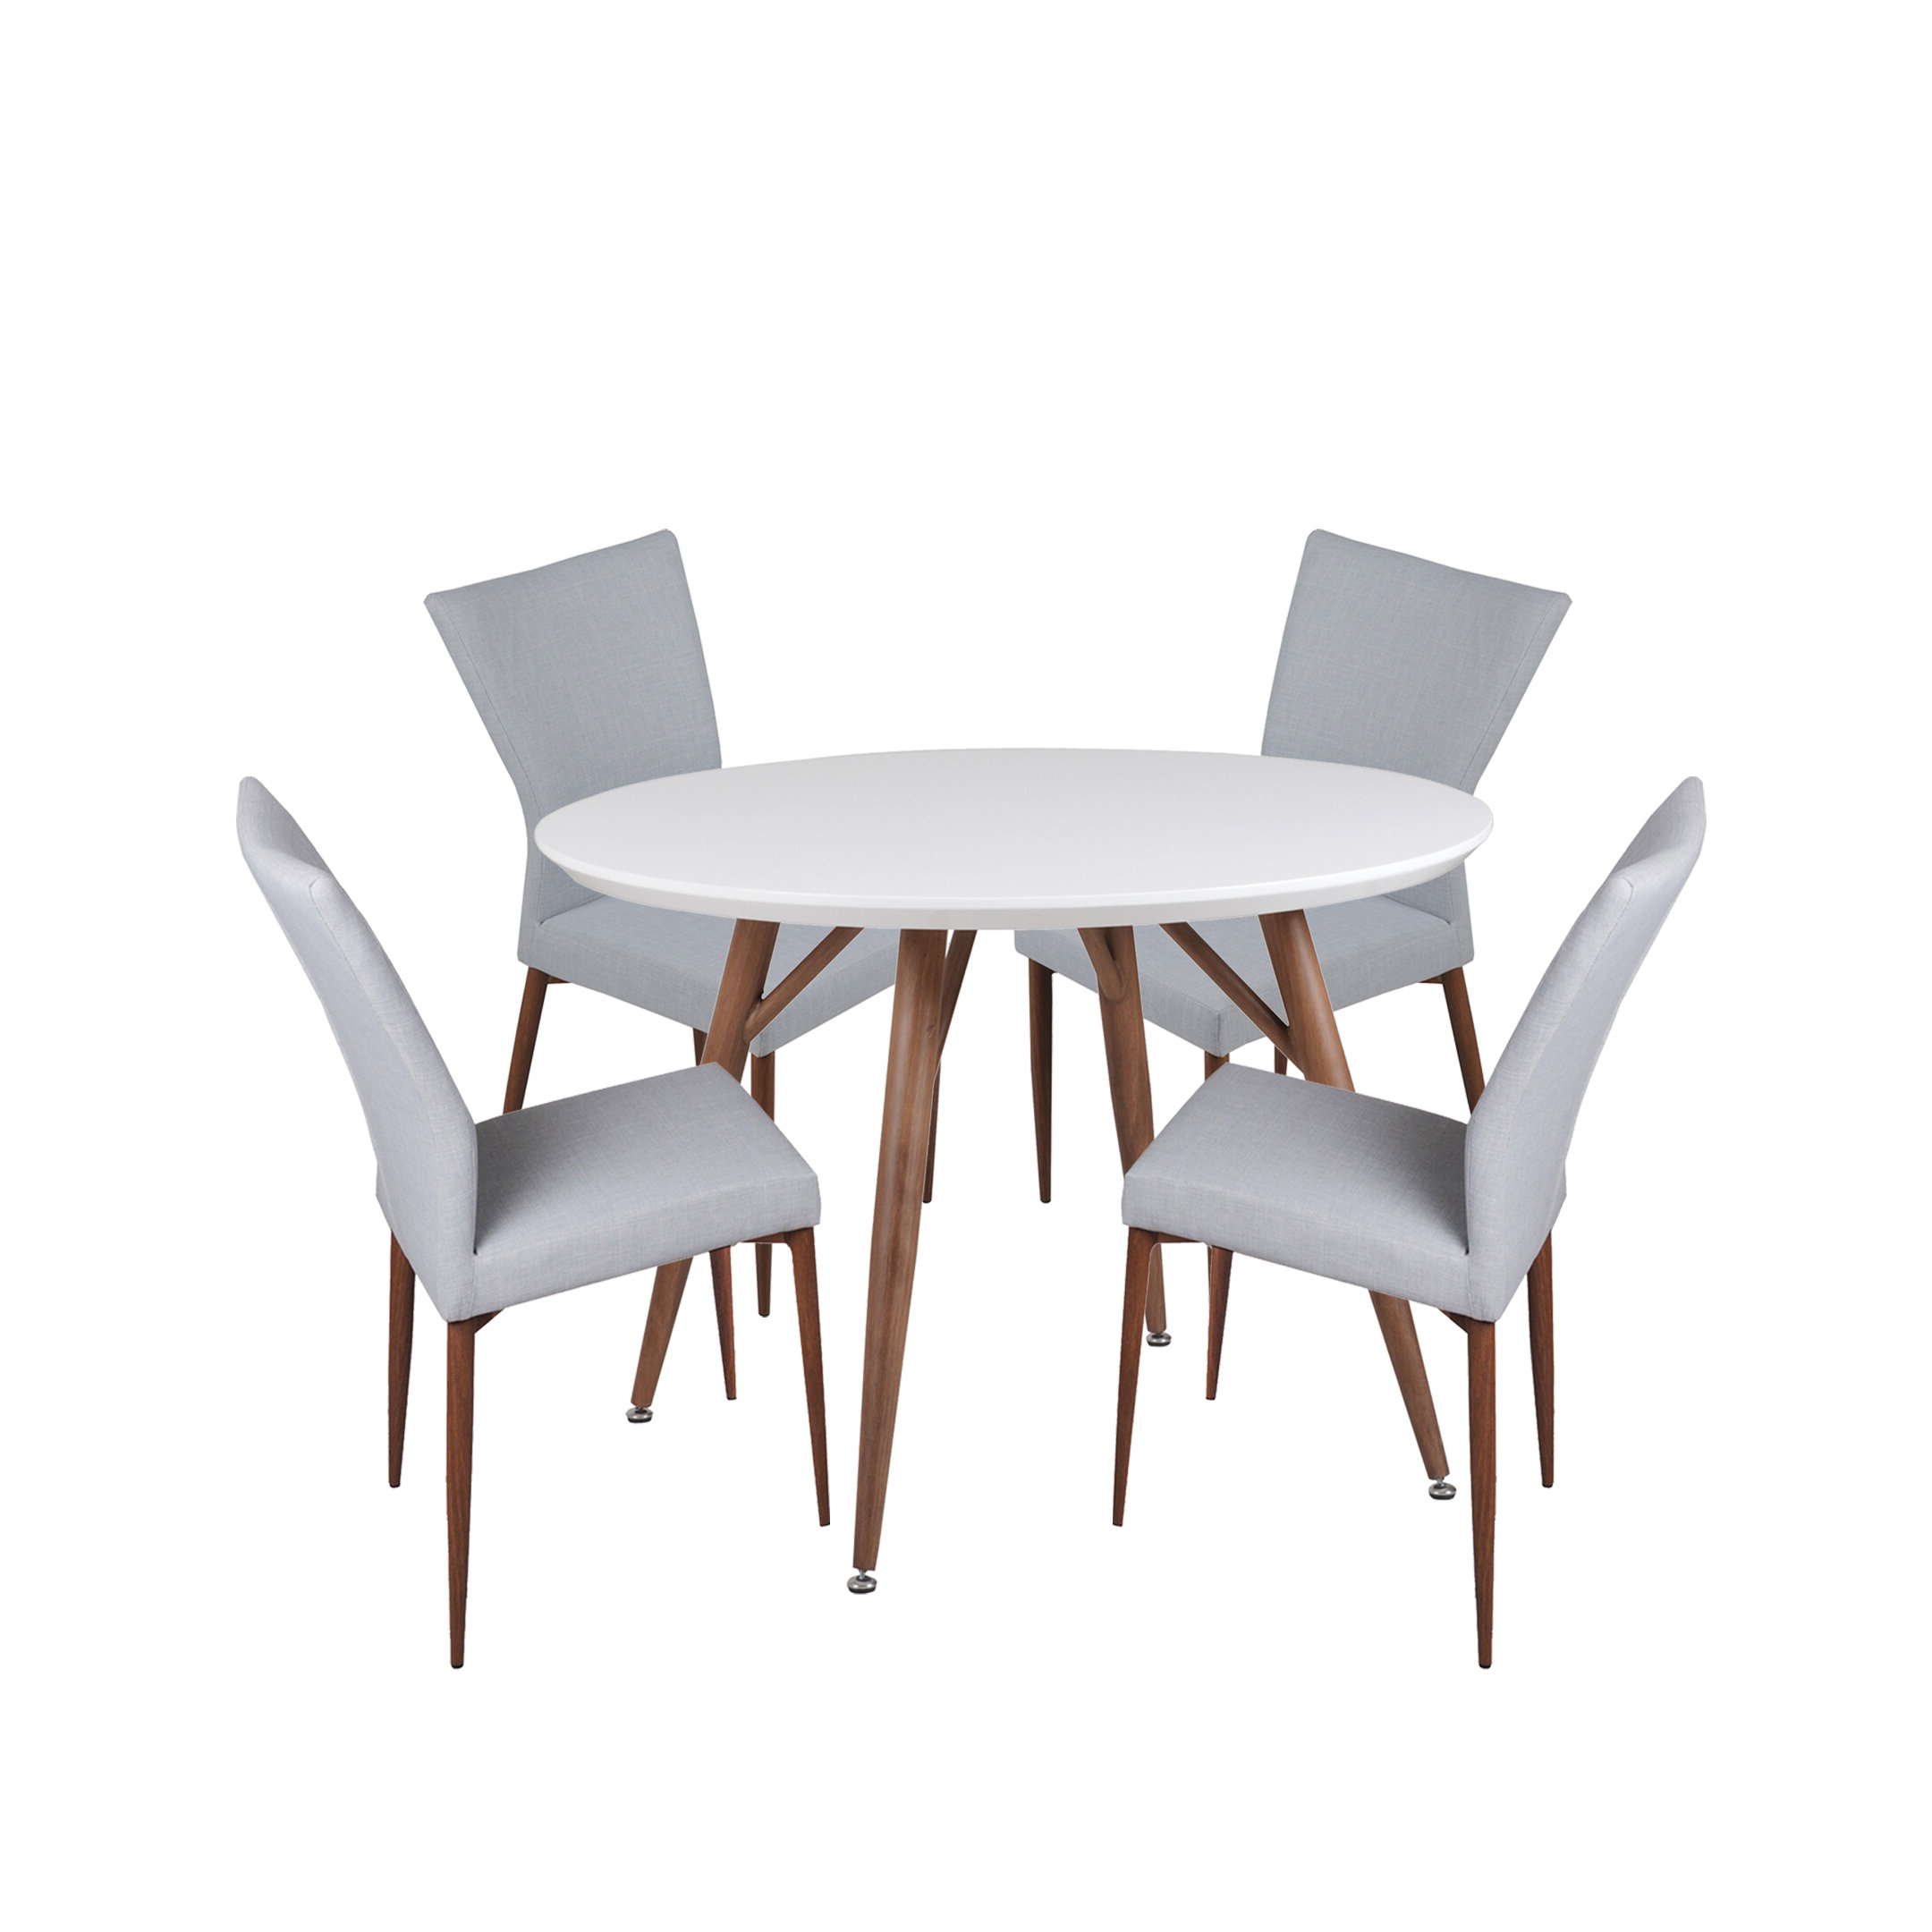 Wayfair Intended For Latest 5 Piece Breakfast Nook Dining Sets (View 20 of 25)